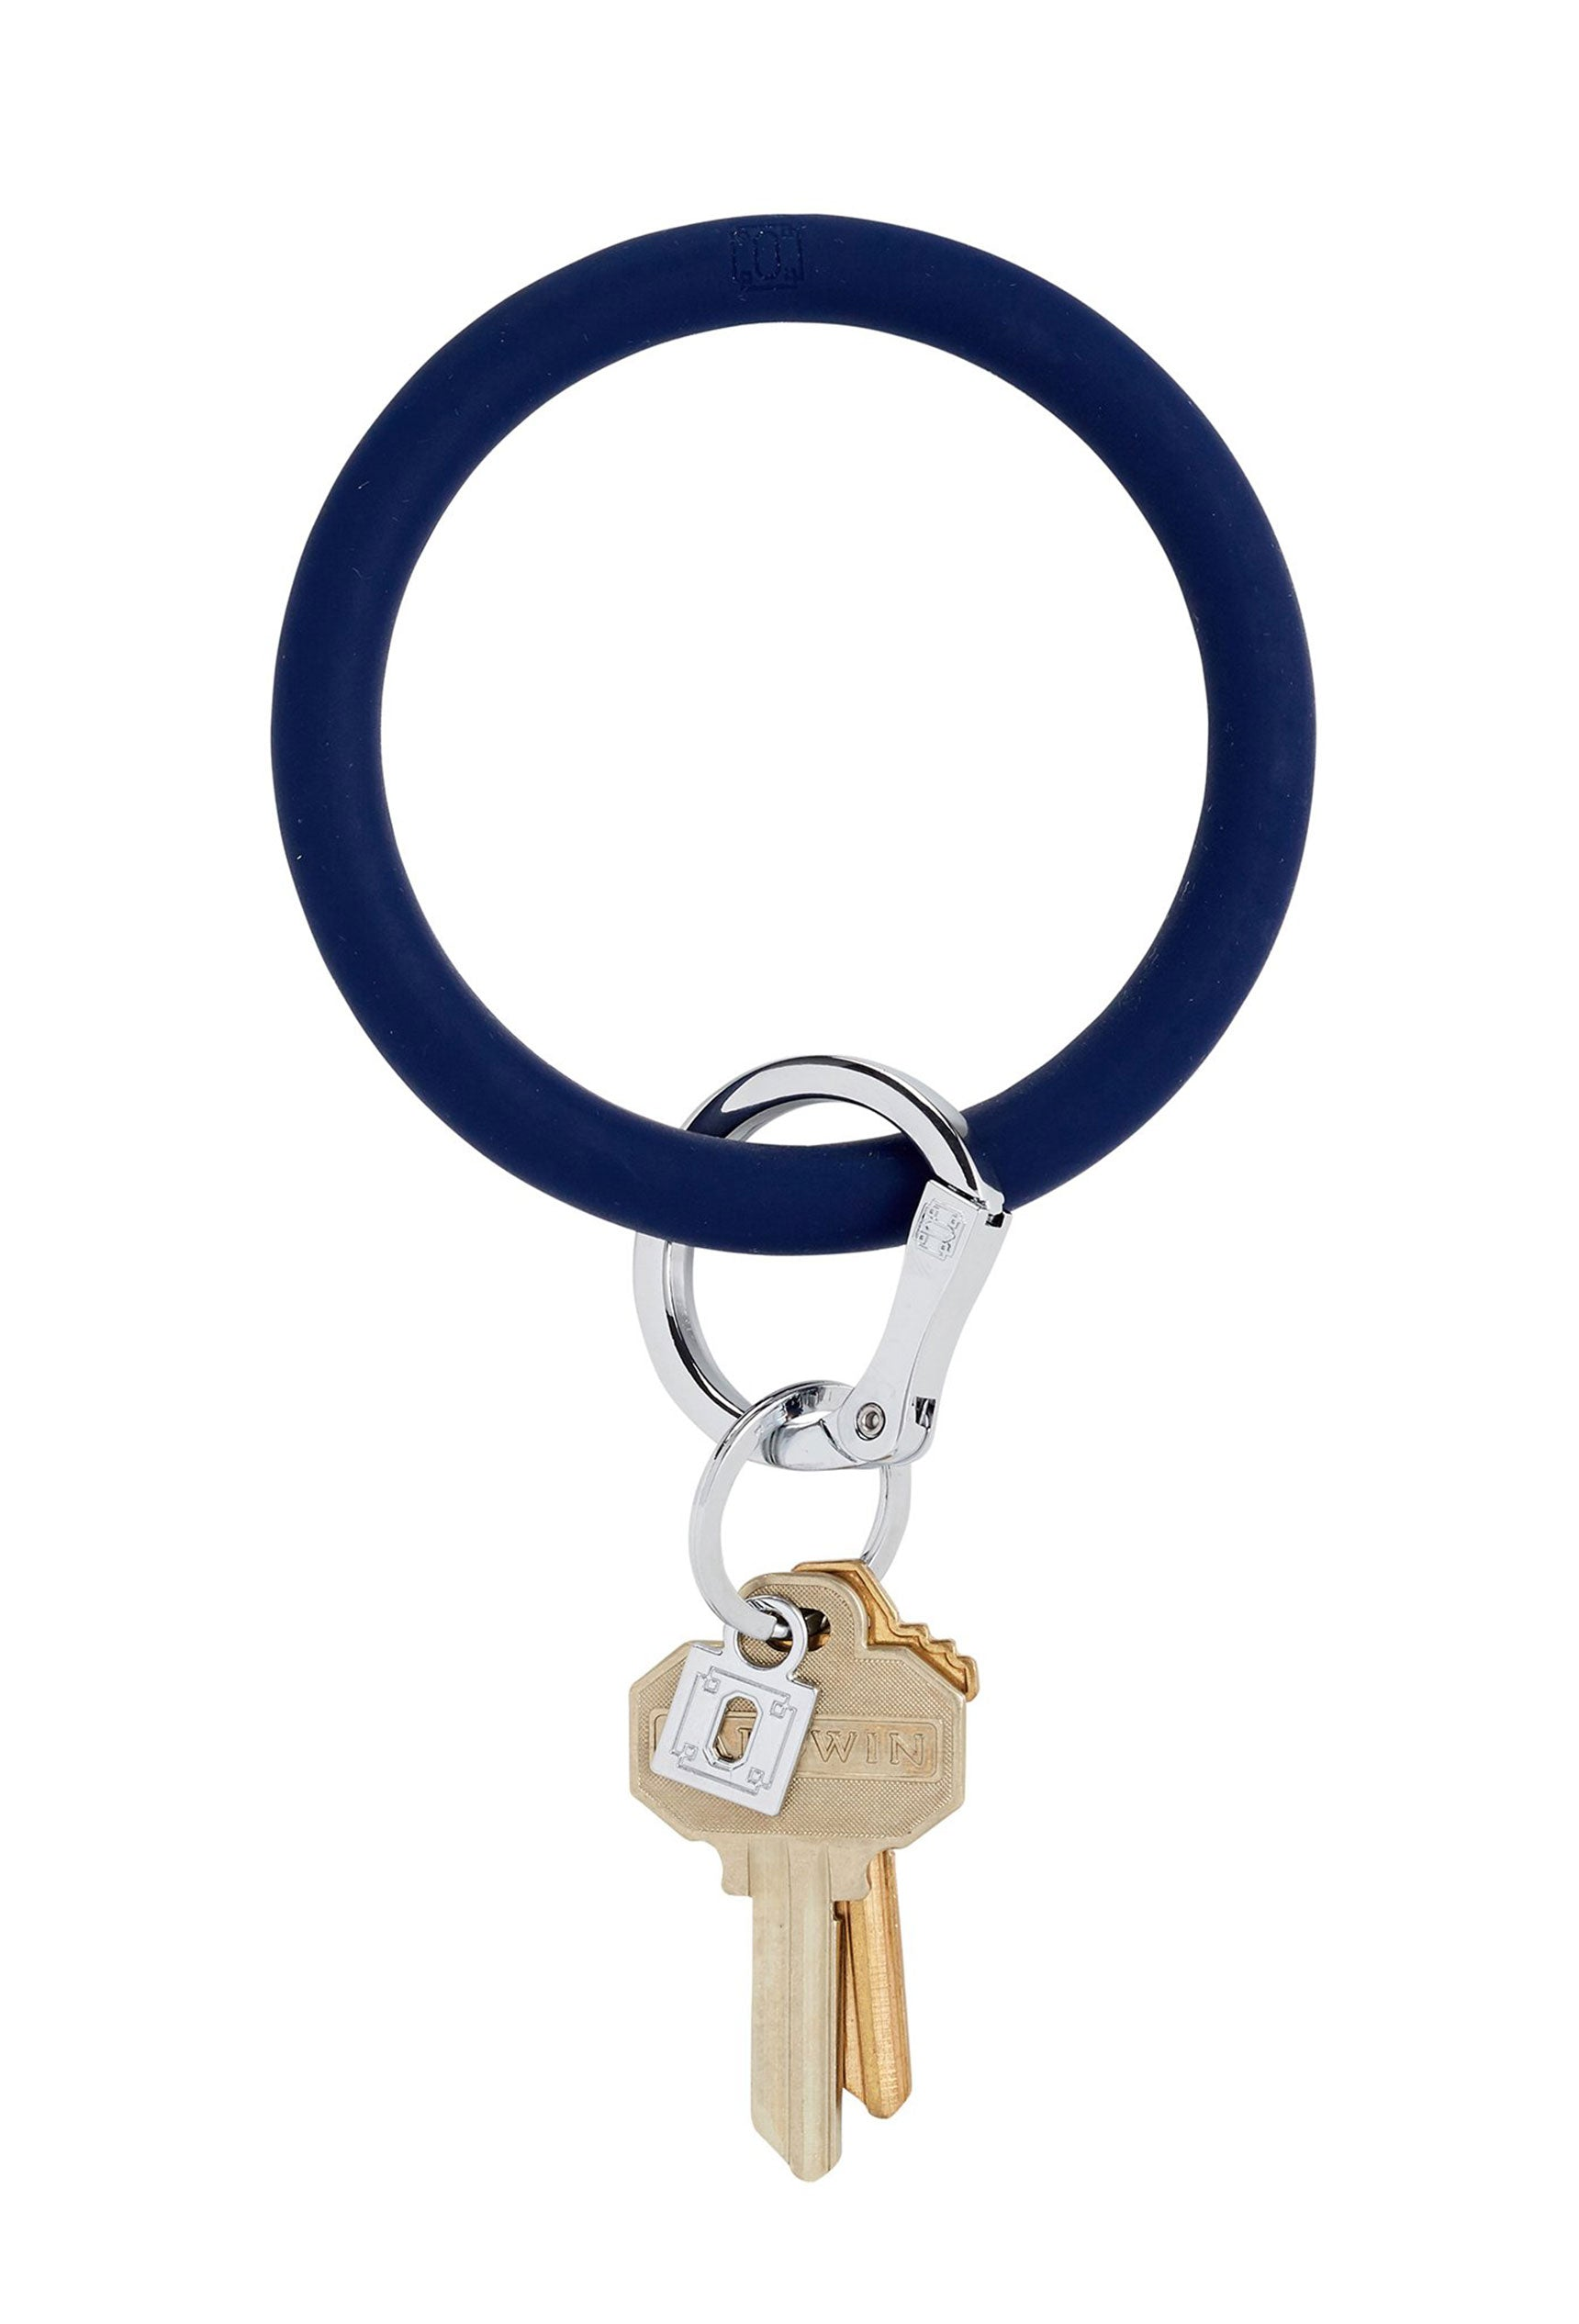 oventure silicone keyring in midnight navy, navy blue keychain